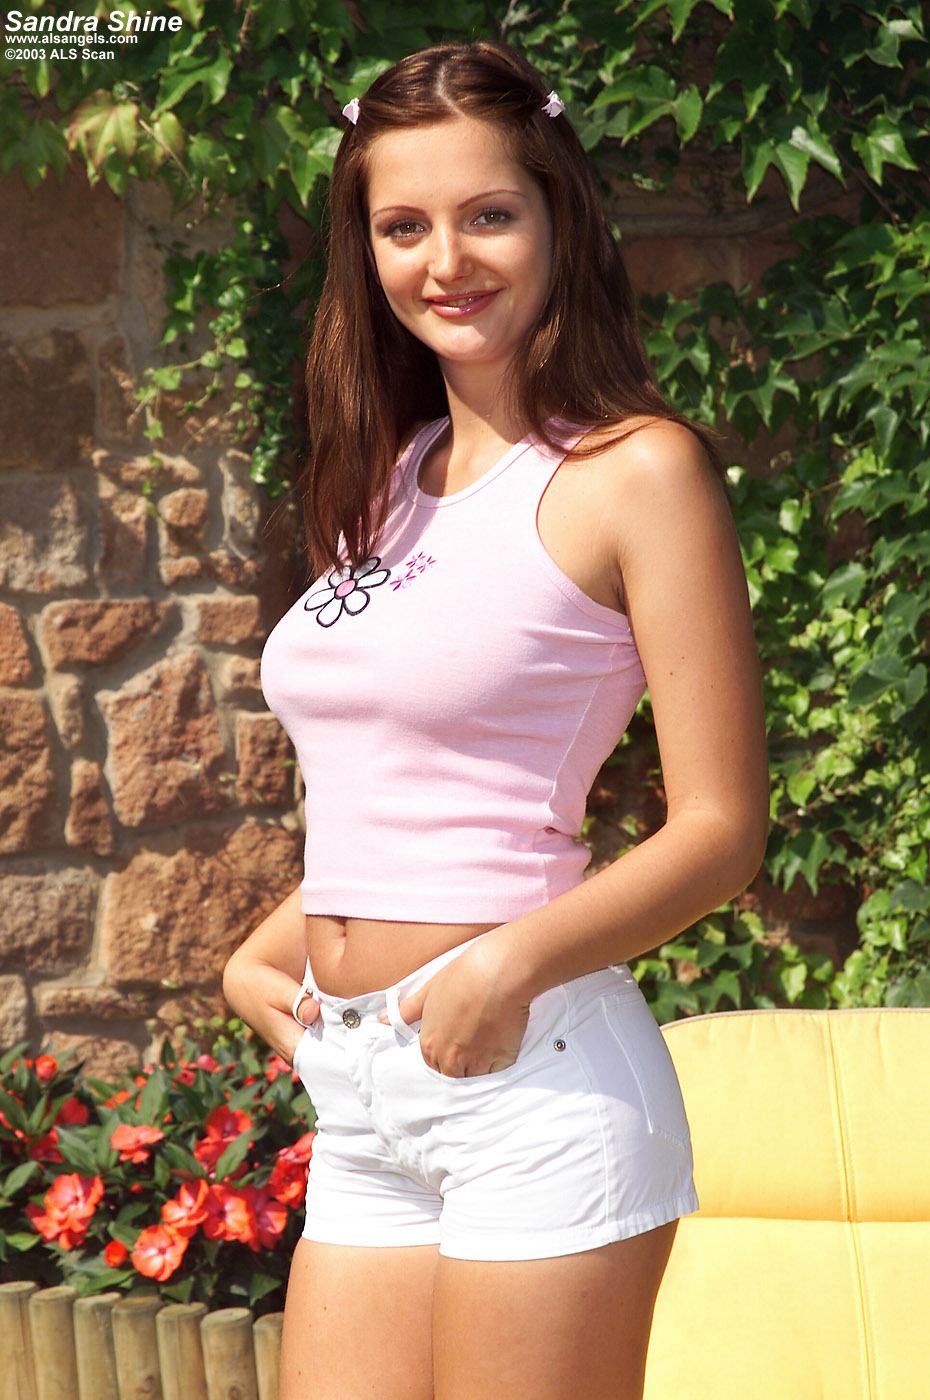 Sandra Shine - Sandra Shine Posing Outdoors